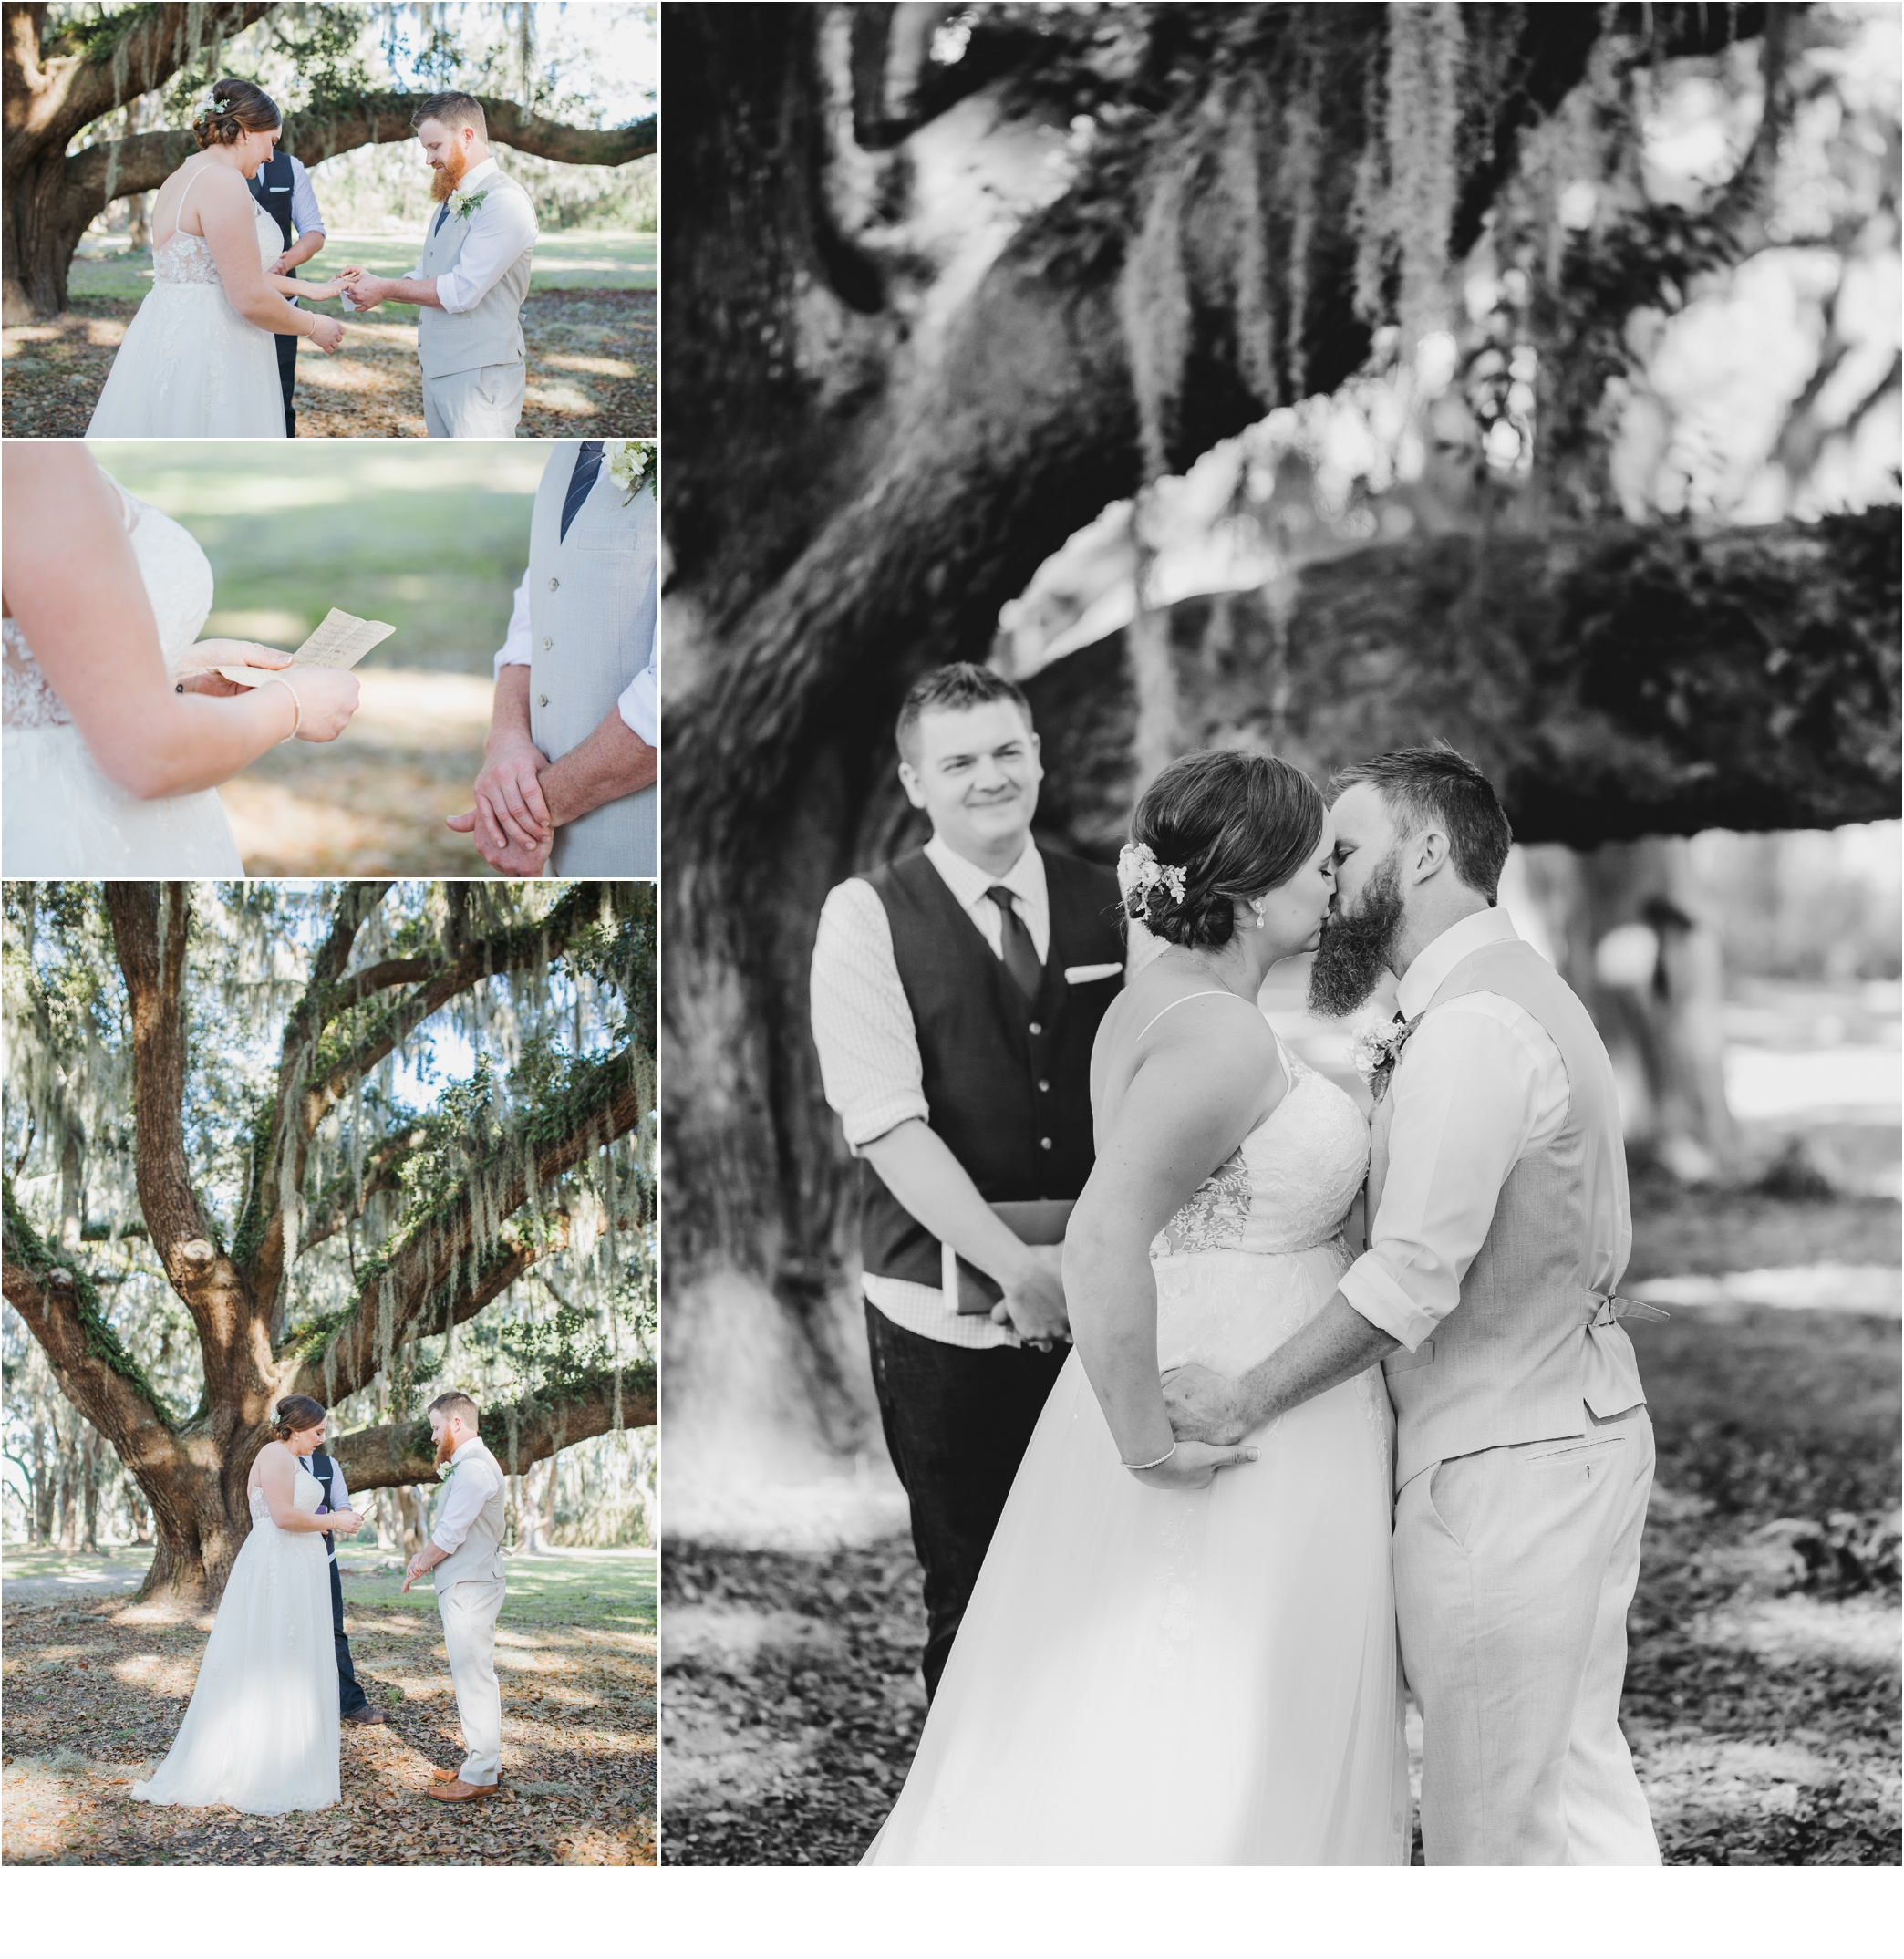 Rainey_Gregg_Photography_St._Simons_Island_Georgia_California_Wedding_Portrait_Photography_1727.jpg